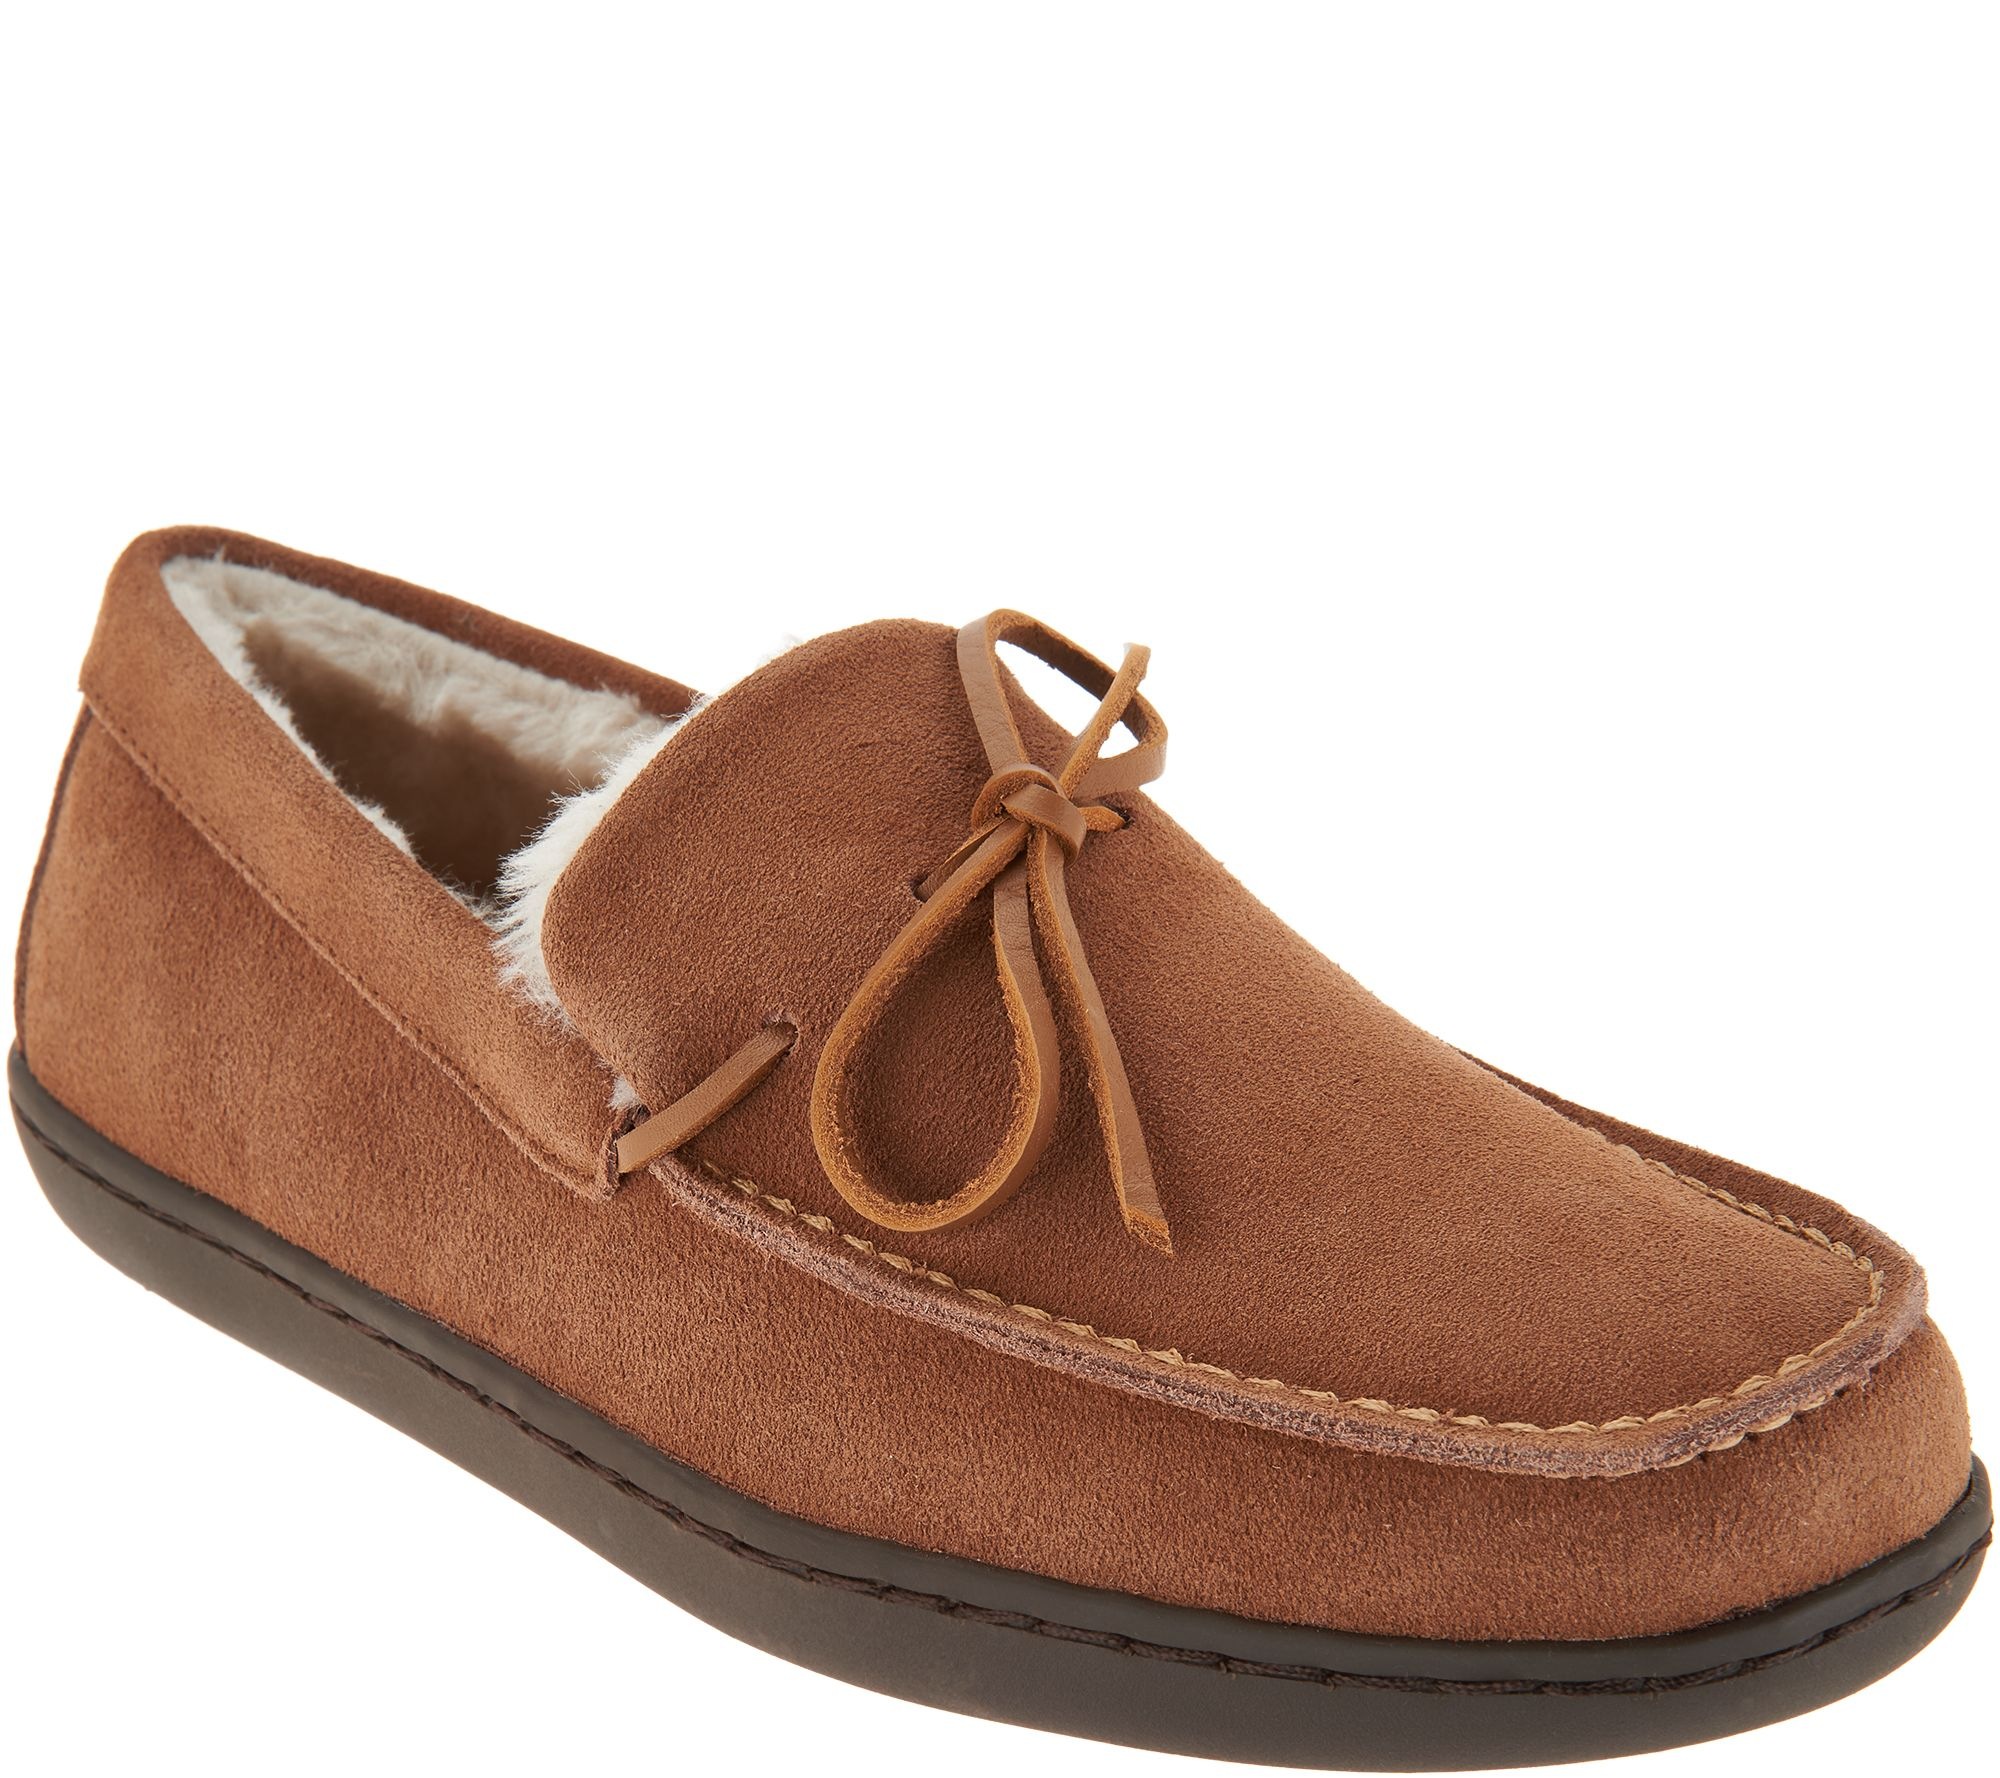 outlet purchase the cheapest Vionic Orthotic Men's Suede Slippers - Adler clearance Inexpensive official site cheap price free shipping cheap PK5cge